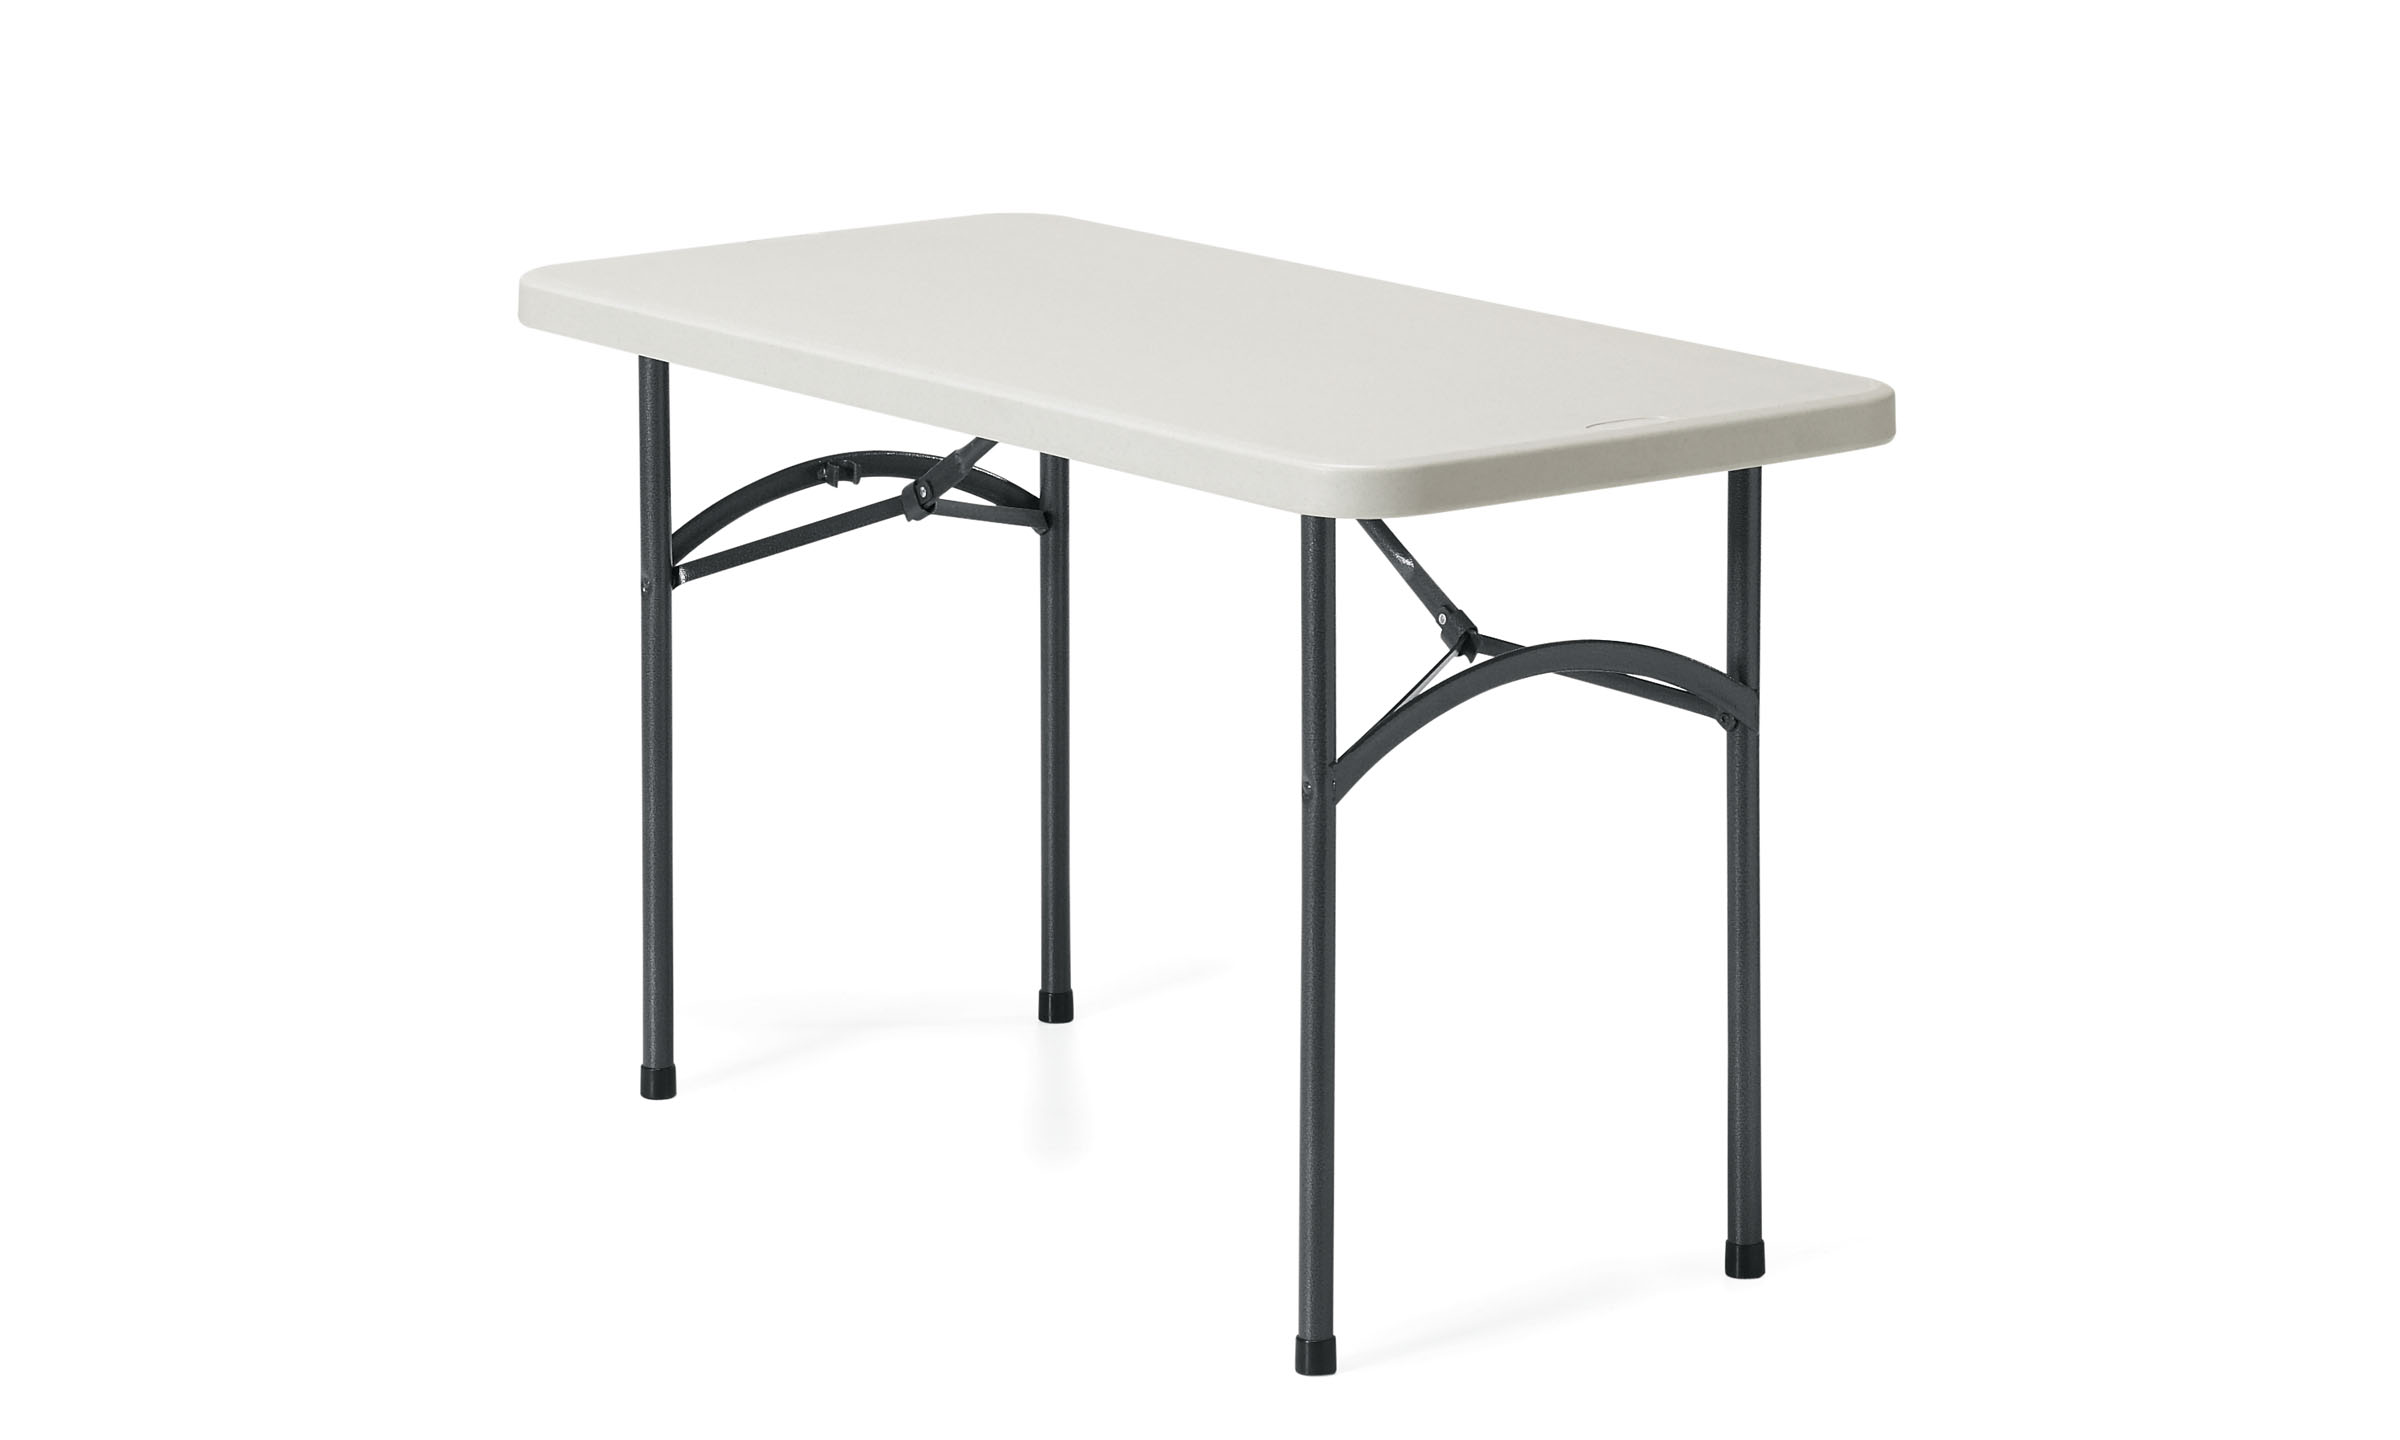 Costco Folding Tables | Walmart 6 Ft Folding Table | Where Can I Buy A Folding Table